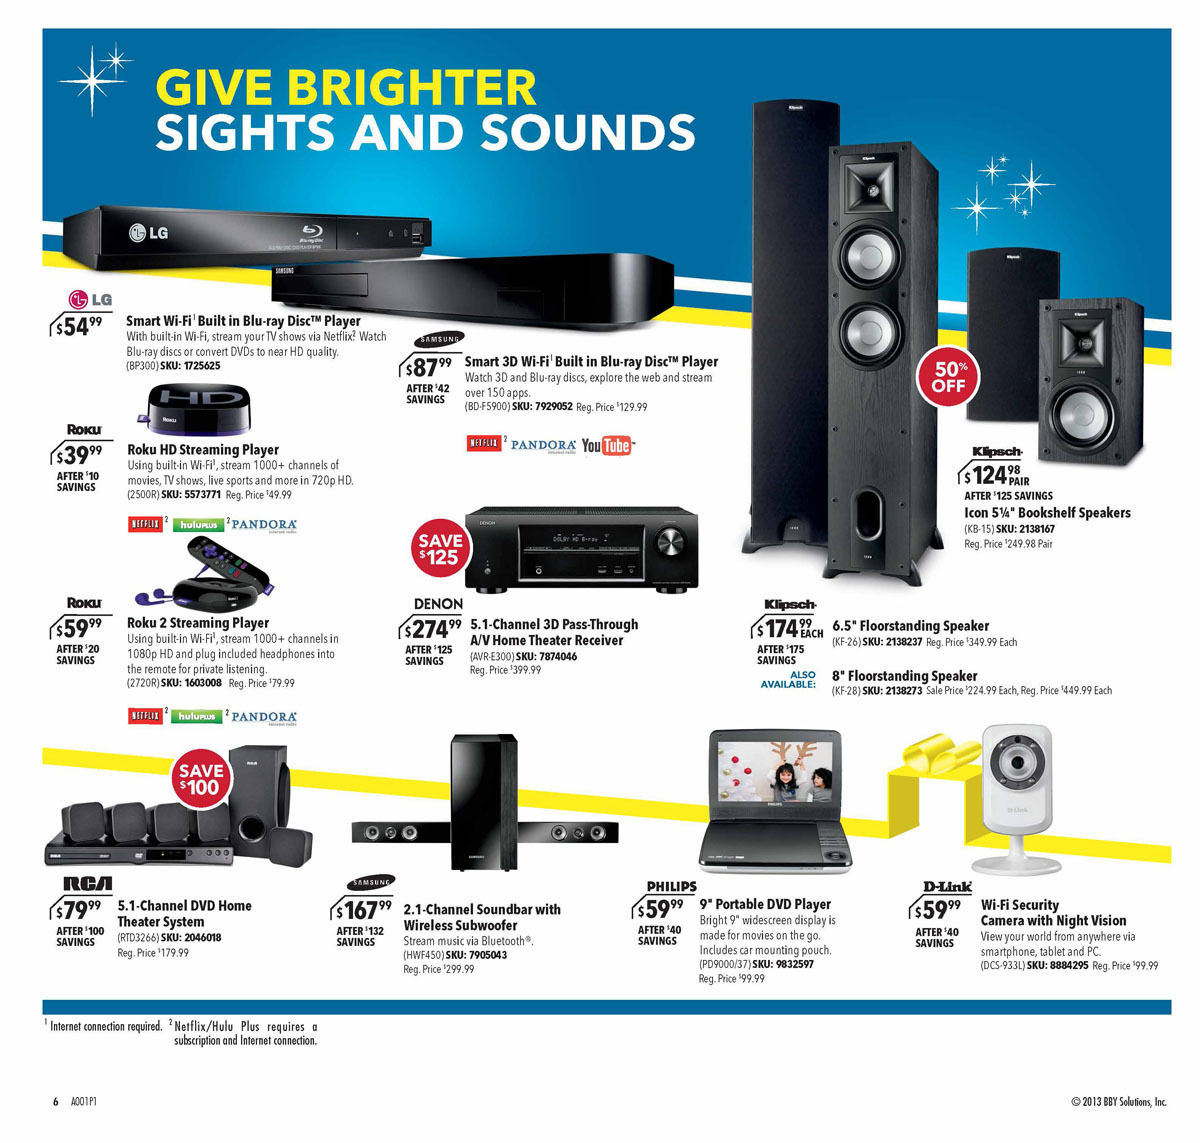 BestBuy_blackfriday2013_6